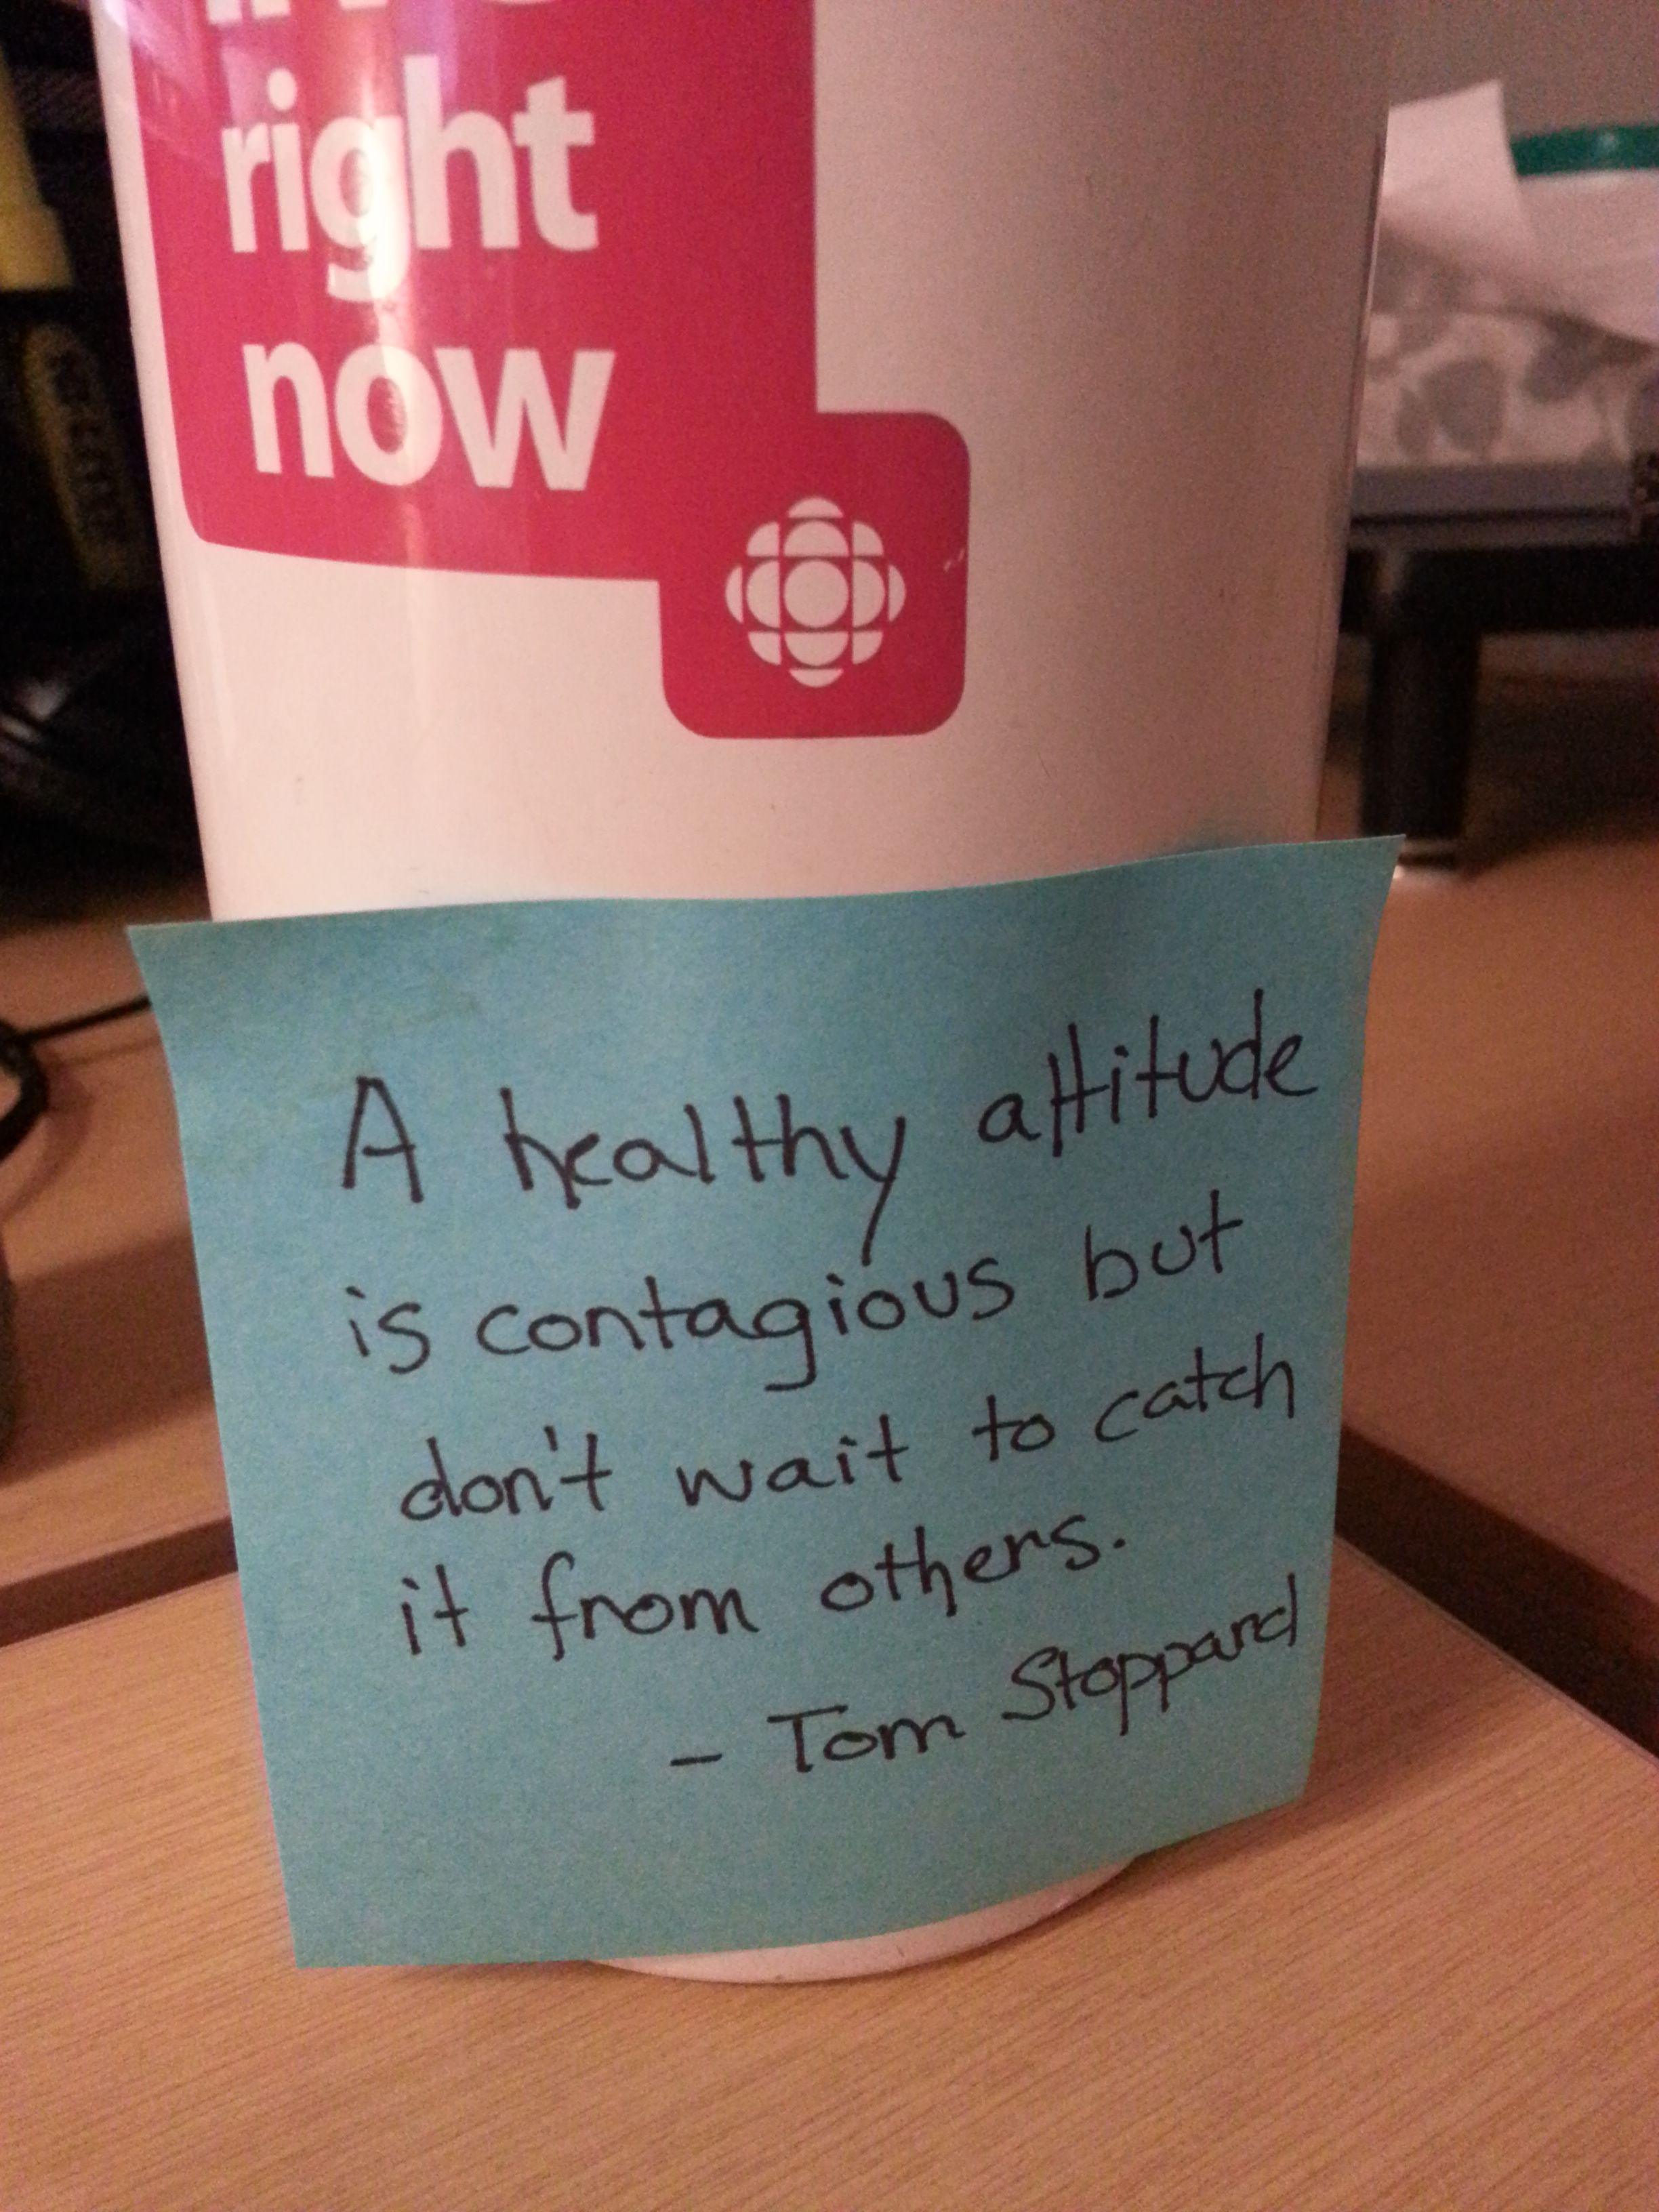 An inspiring note to switch on a healthy attitude.